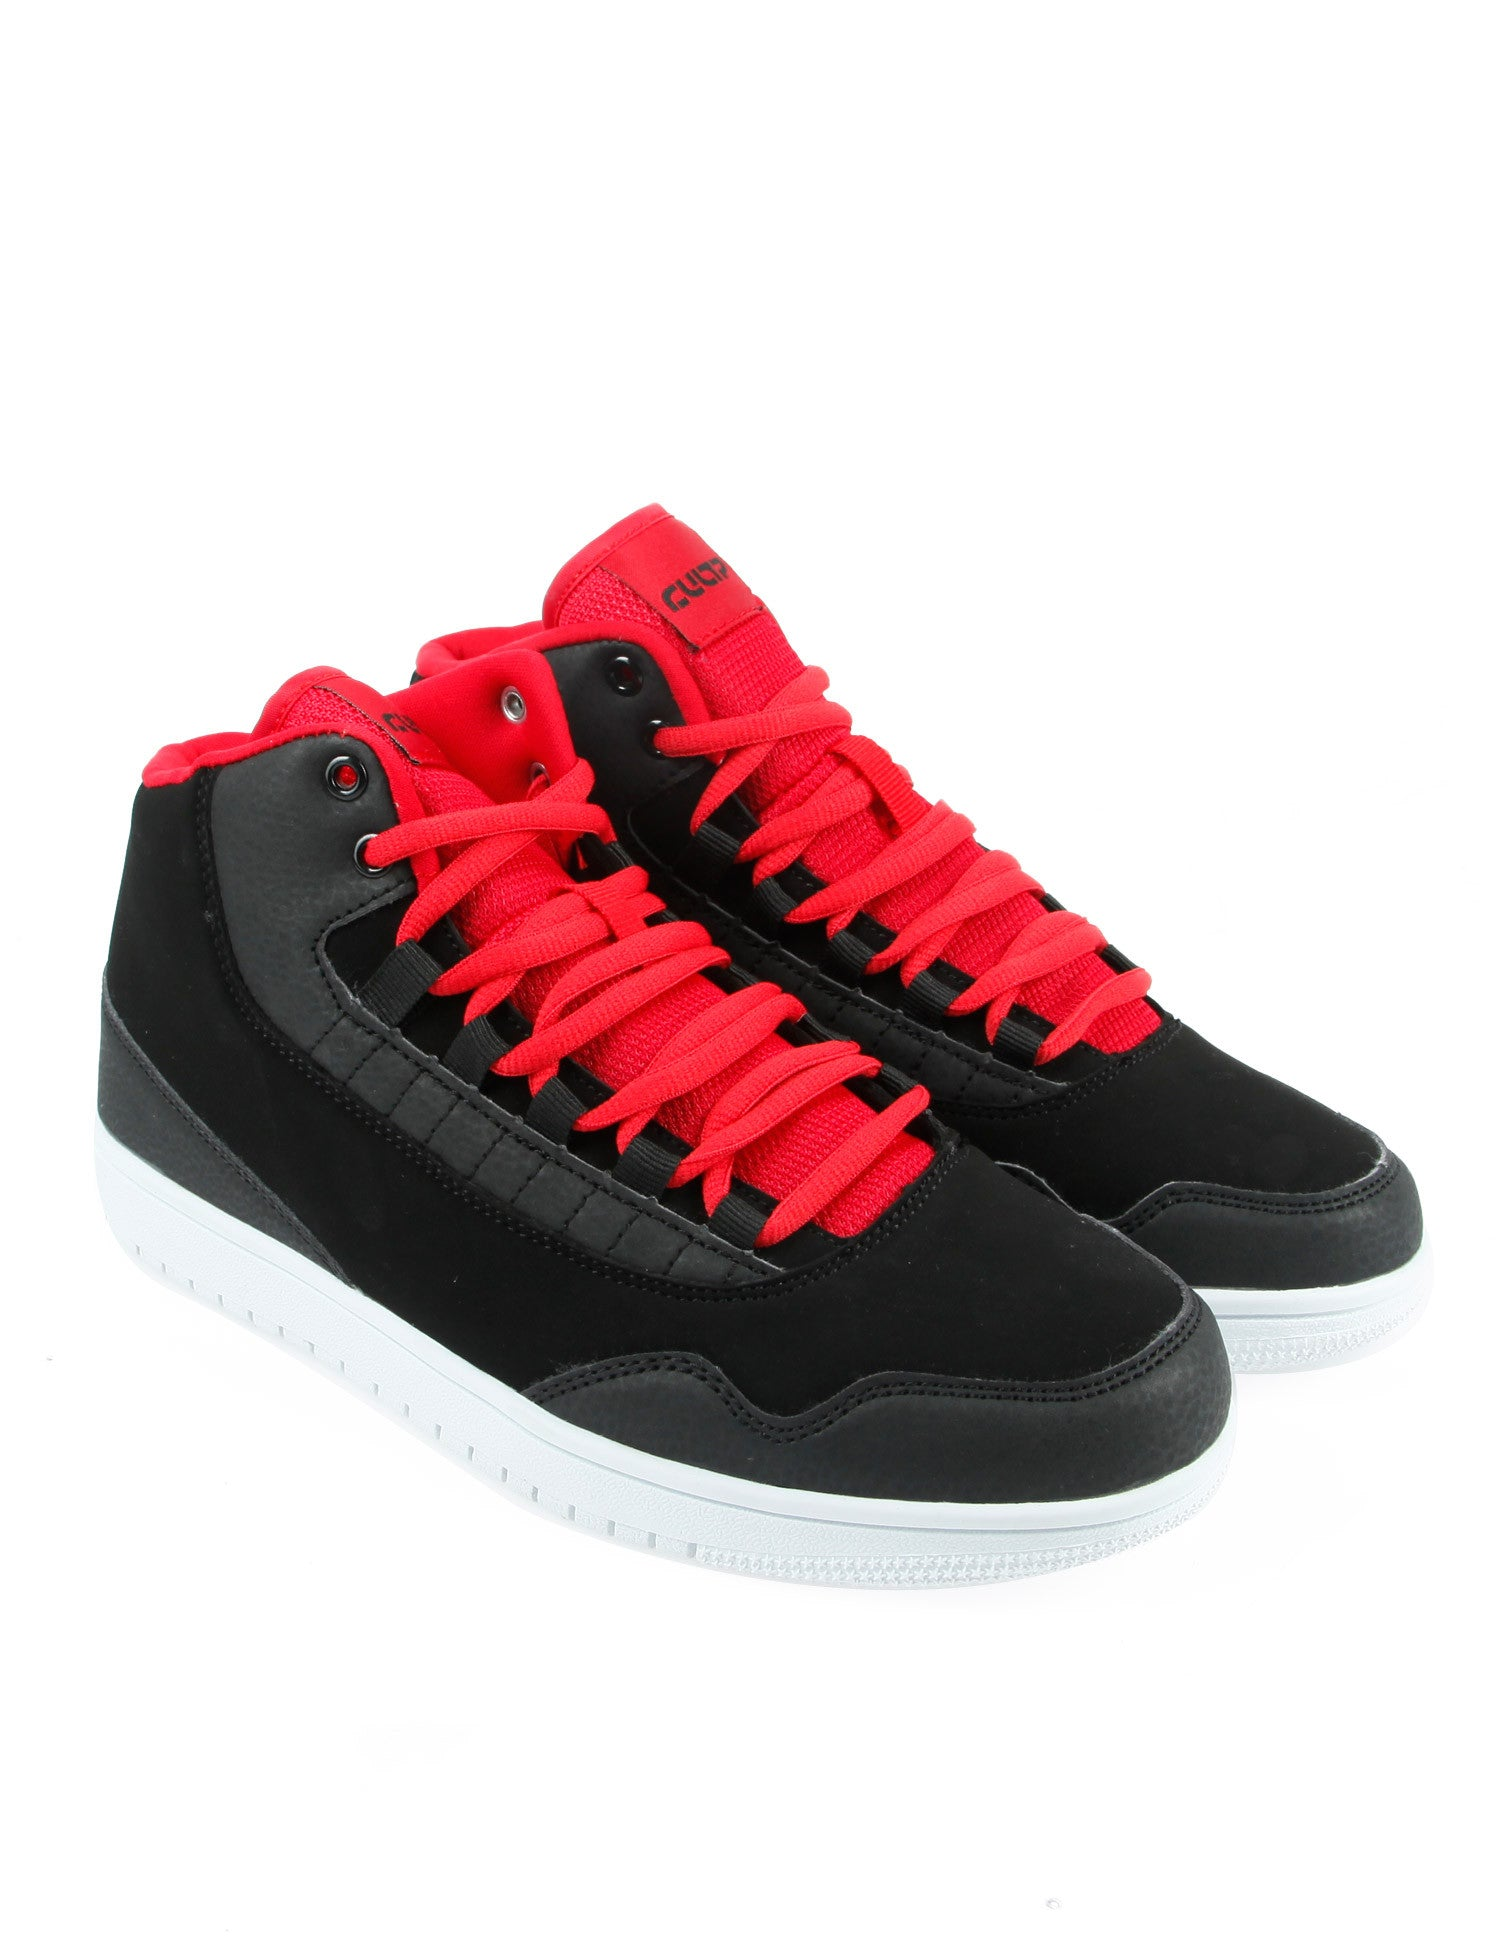 Cultz Shoes 860309-2M Black Red